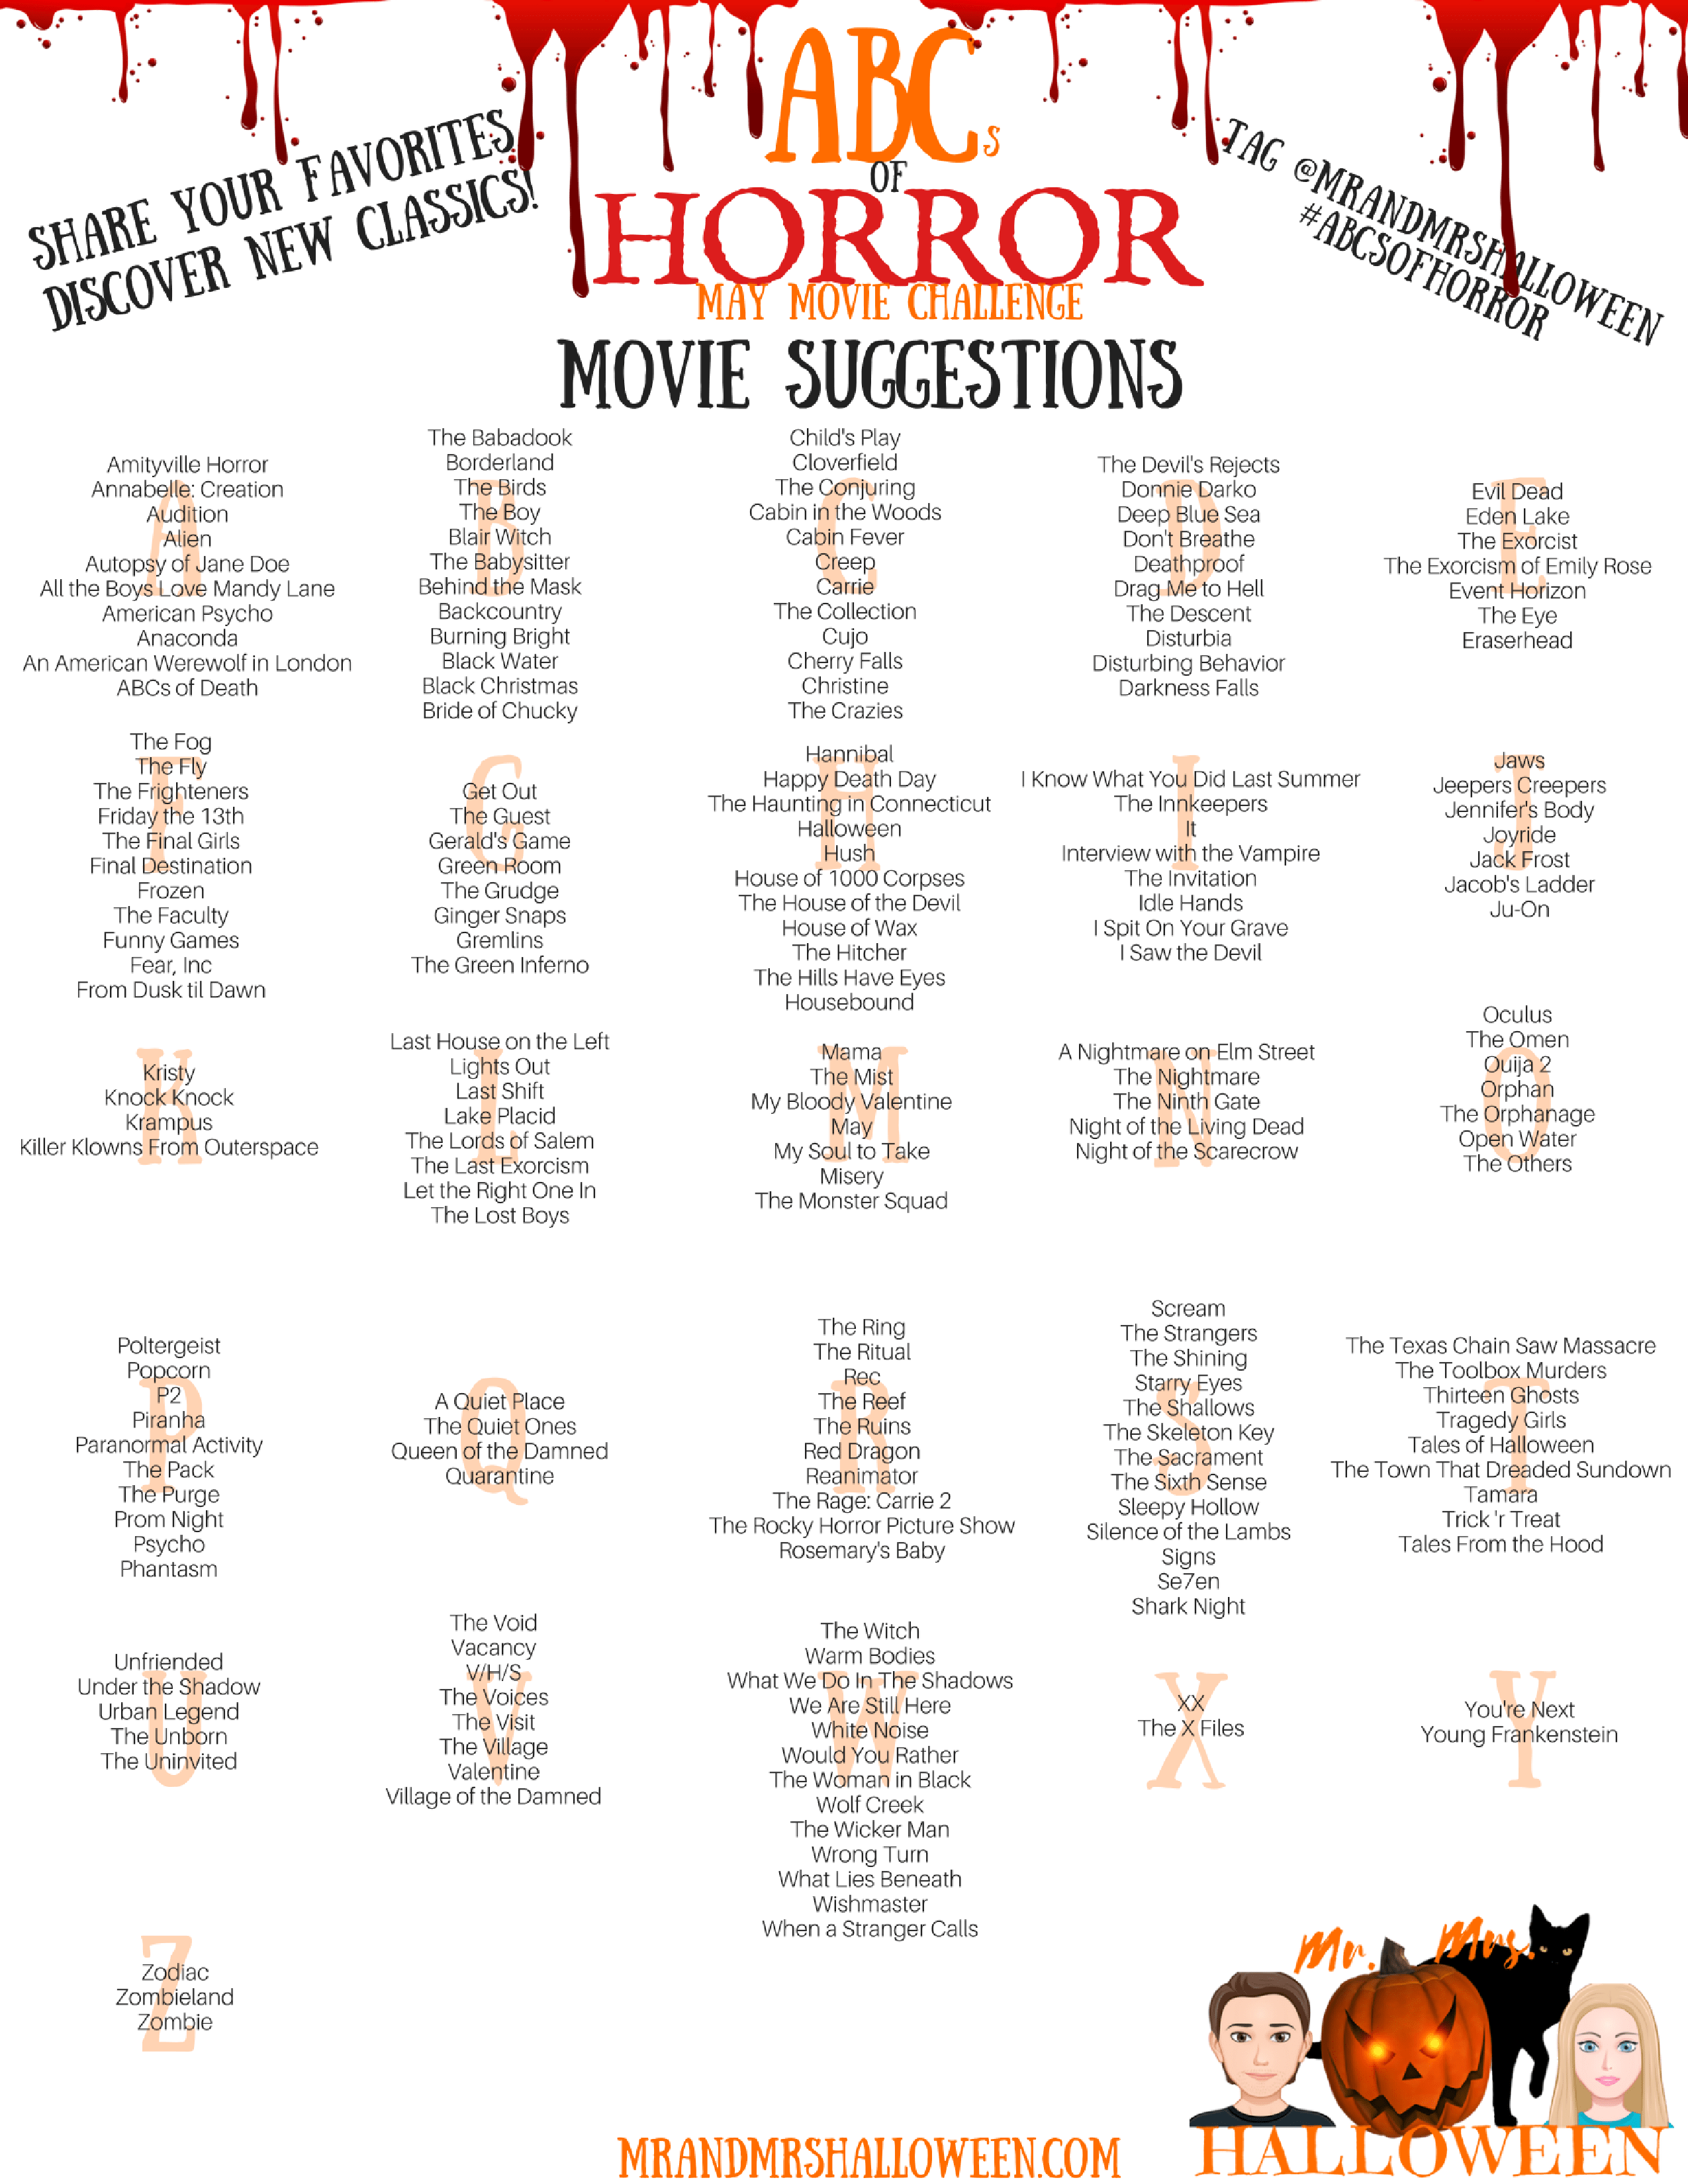 Abcs Of Horror Movie Challenge Mr And Mrs Halloween The american youtube star, who is also active on instagram and twitter, has lots of fans and followers on these social platforms as well. abcs of horror movie challenge mr